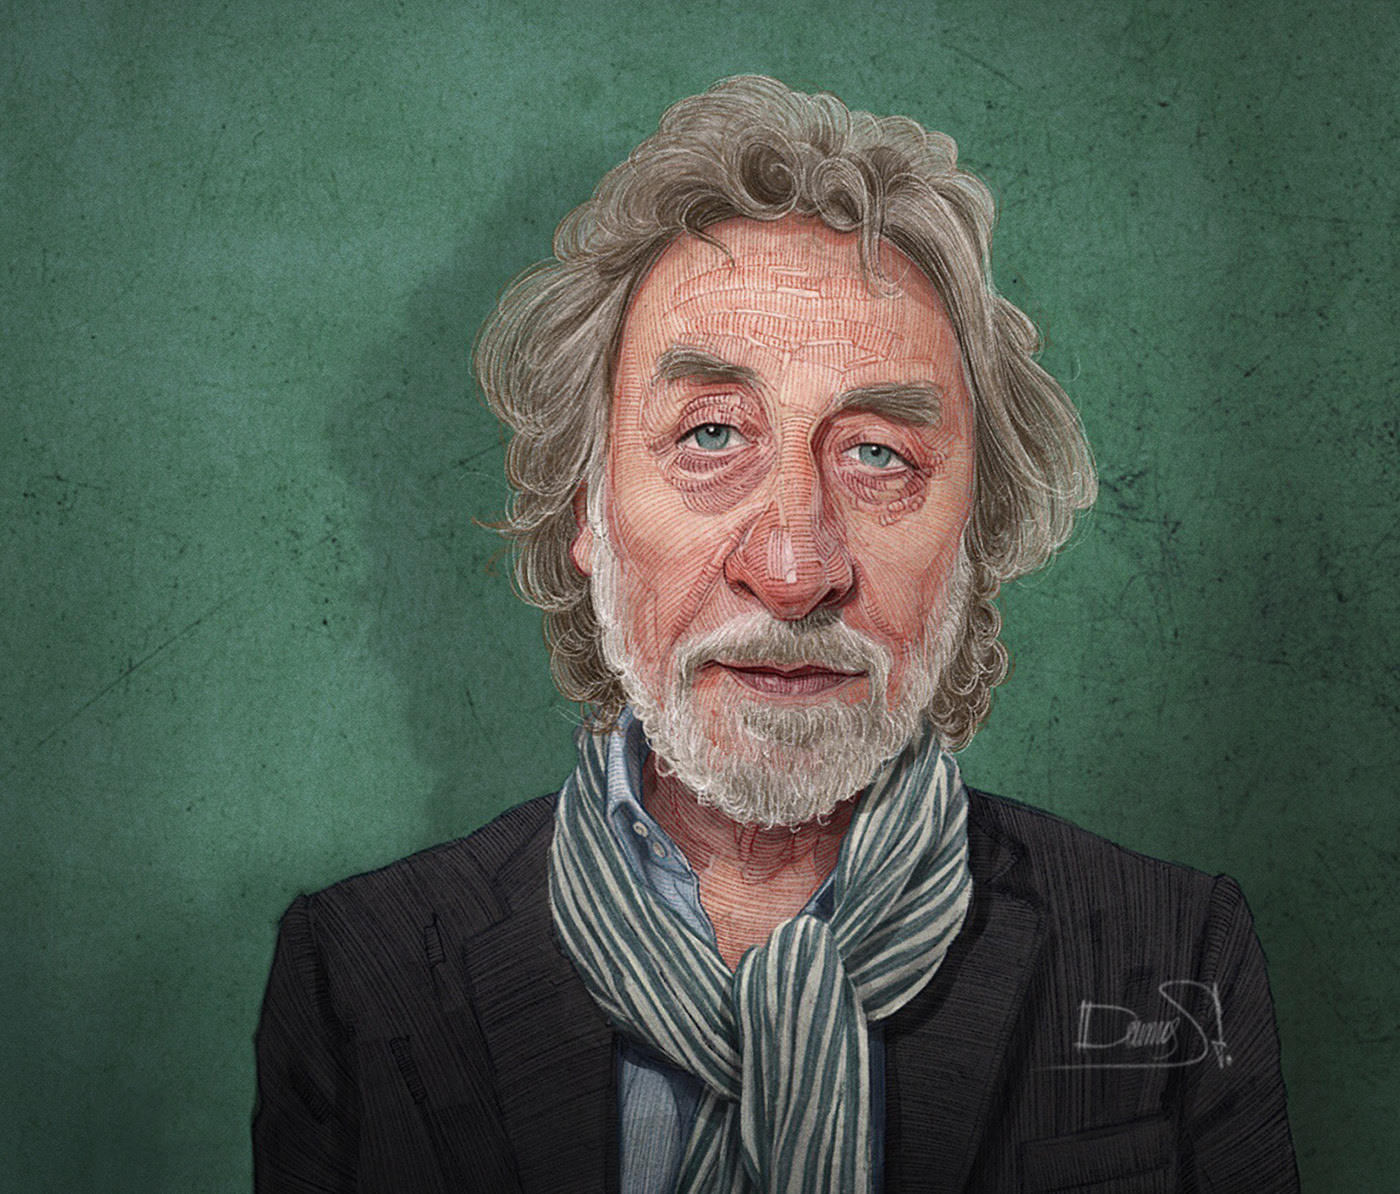 caricature illustration howard jacobson by stavros damos